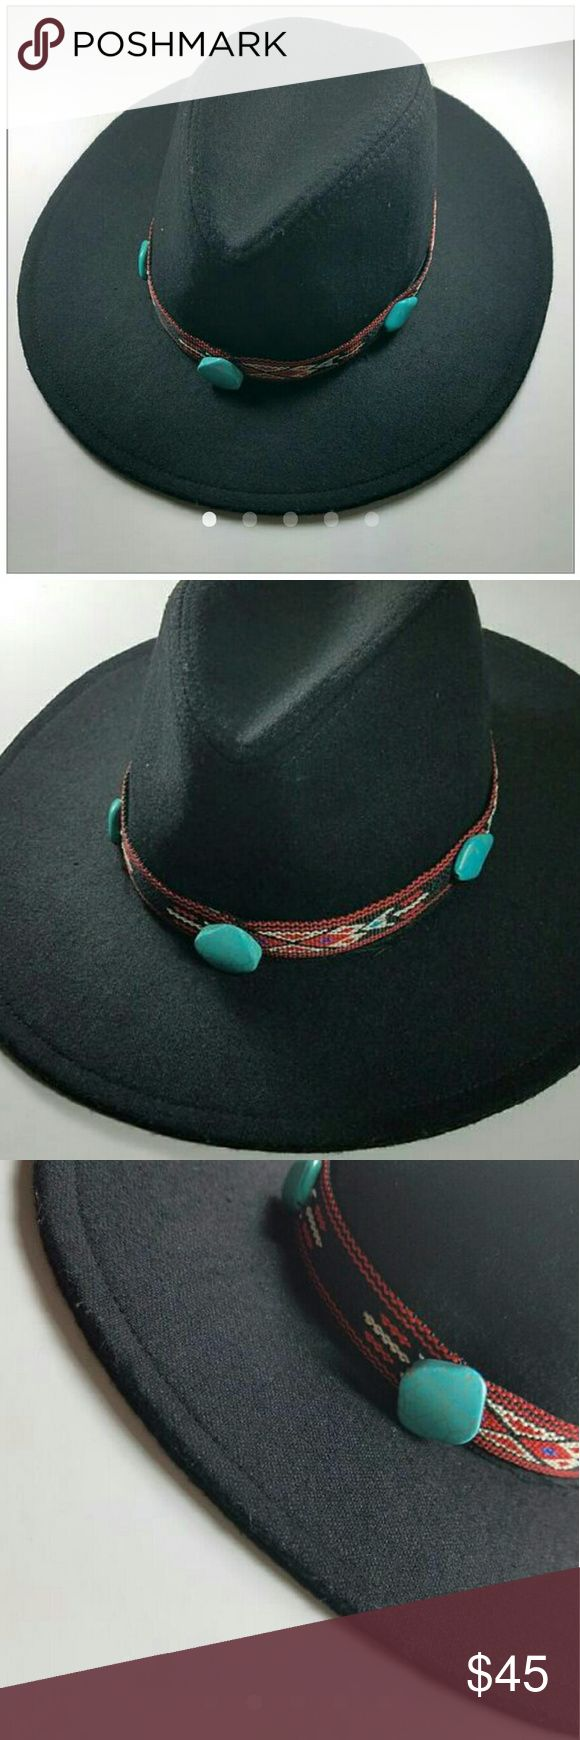 "New Southwestern Boho Hat Band If you are like me and enjoy changing up your hats by switching the hat band, then this handmade ""funkie"" is for YOU! It slips right onto your hat and measures approximately 24"". This band has a lovely tribal/southwestern design with 5 faux turquoise stones. *hat not included* Nepantla Shop Accessories"